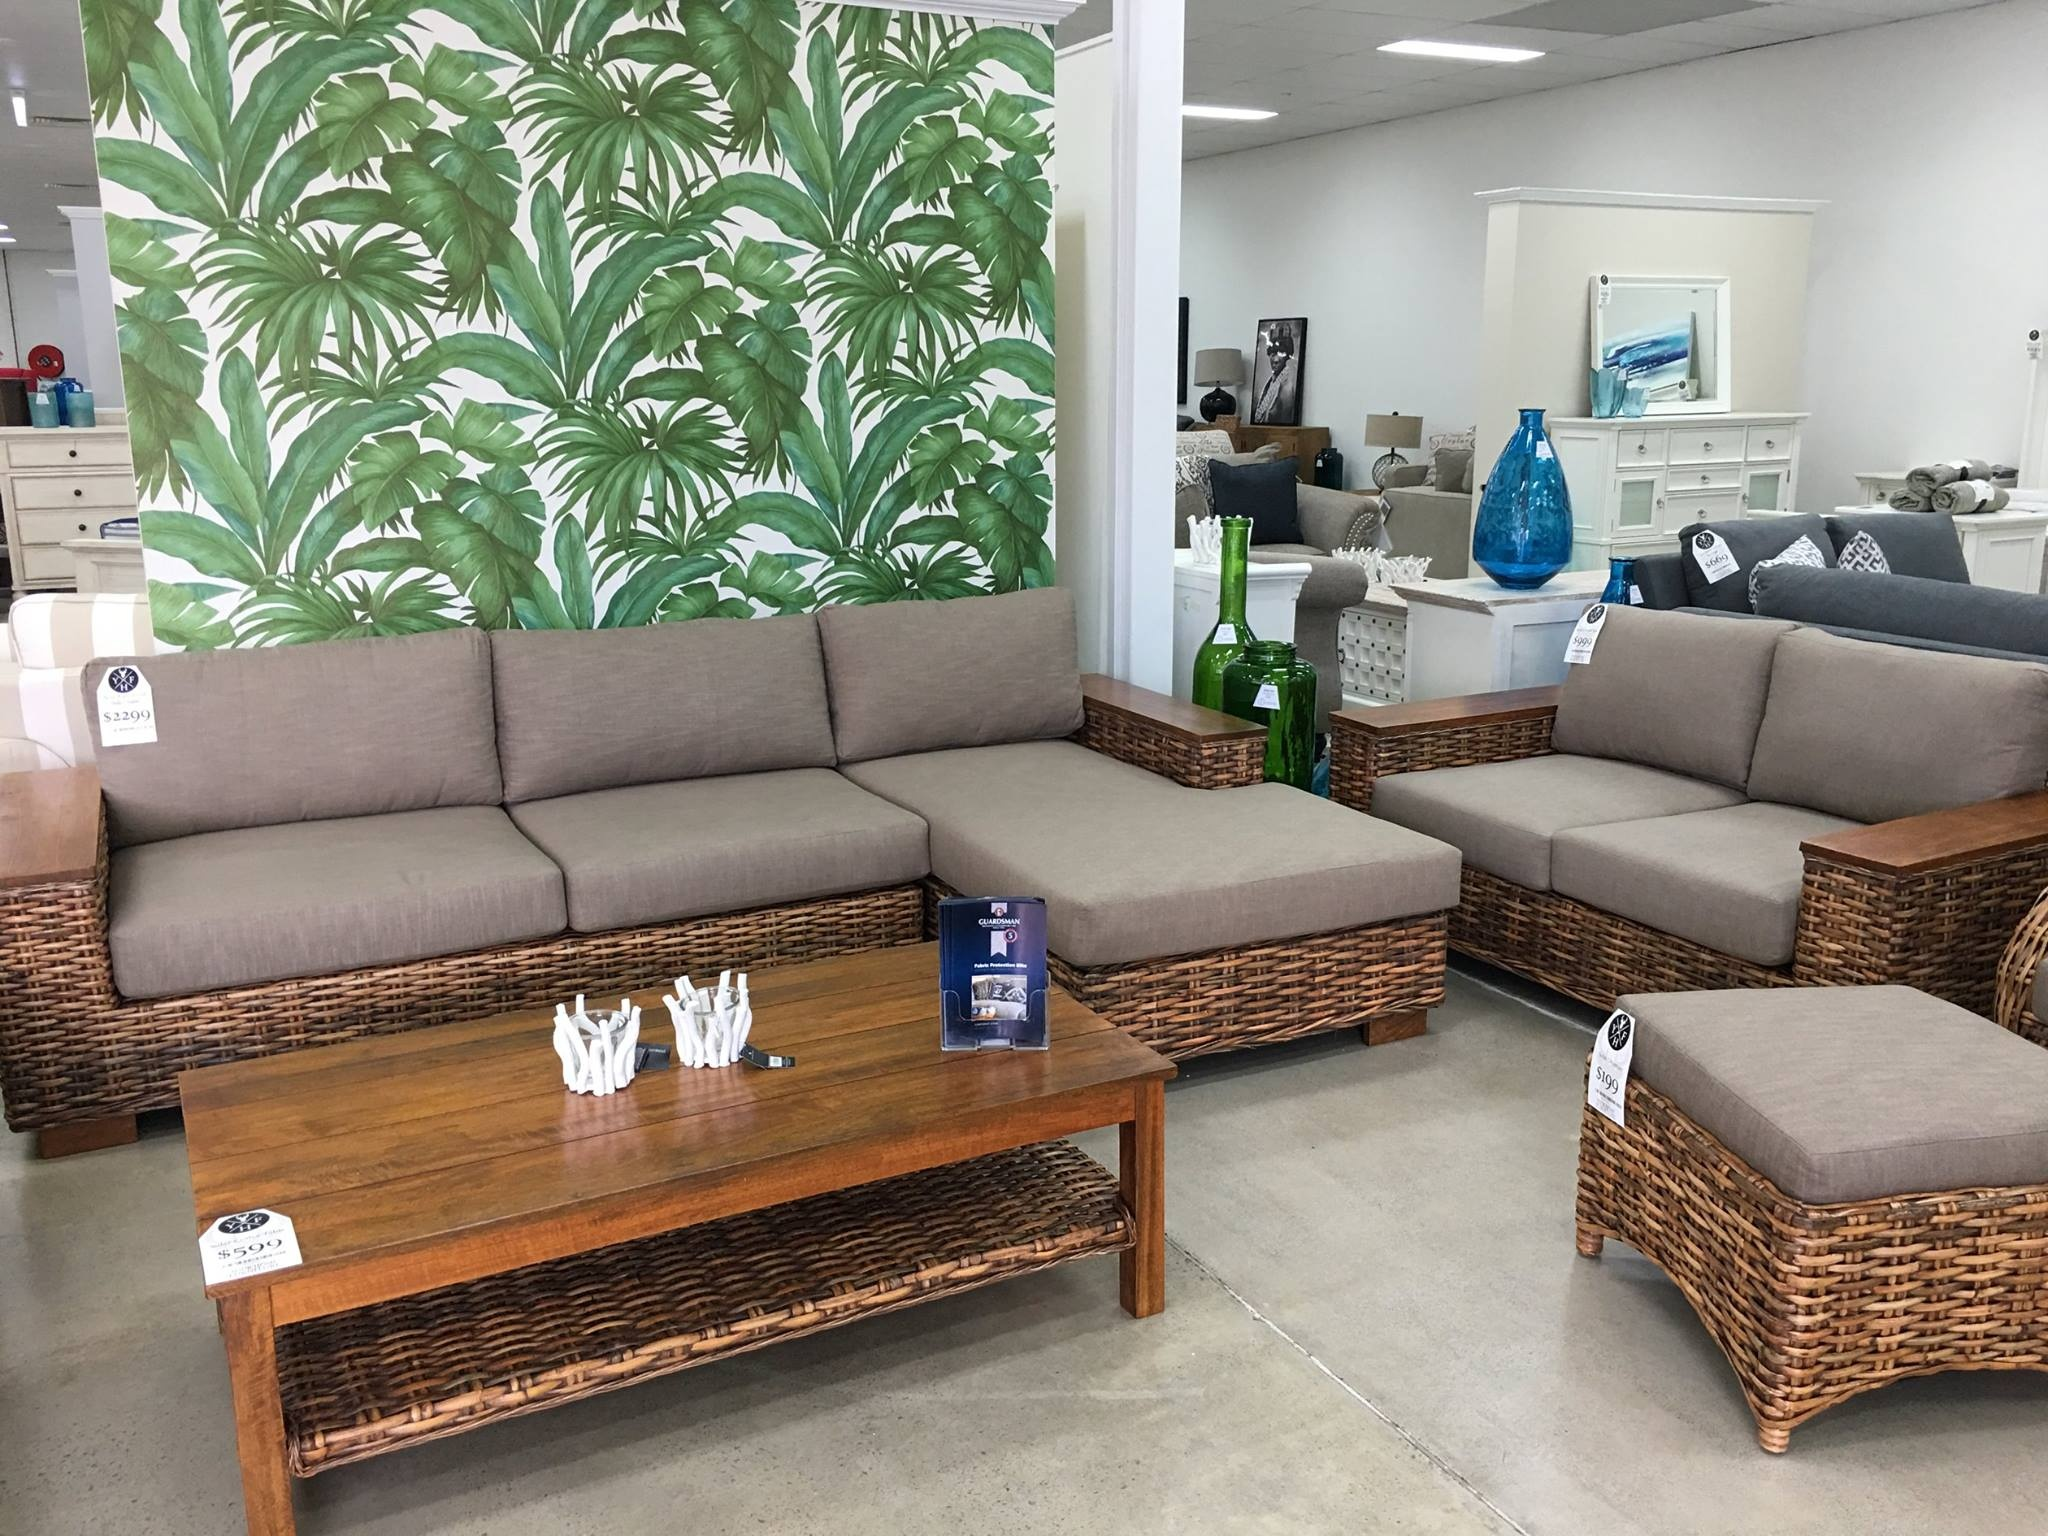 Furniture for sale sunshine coast buy and sell household for Outdoor furniture sunshine coast